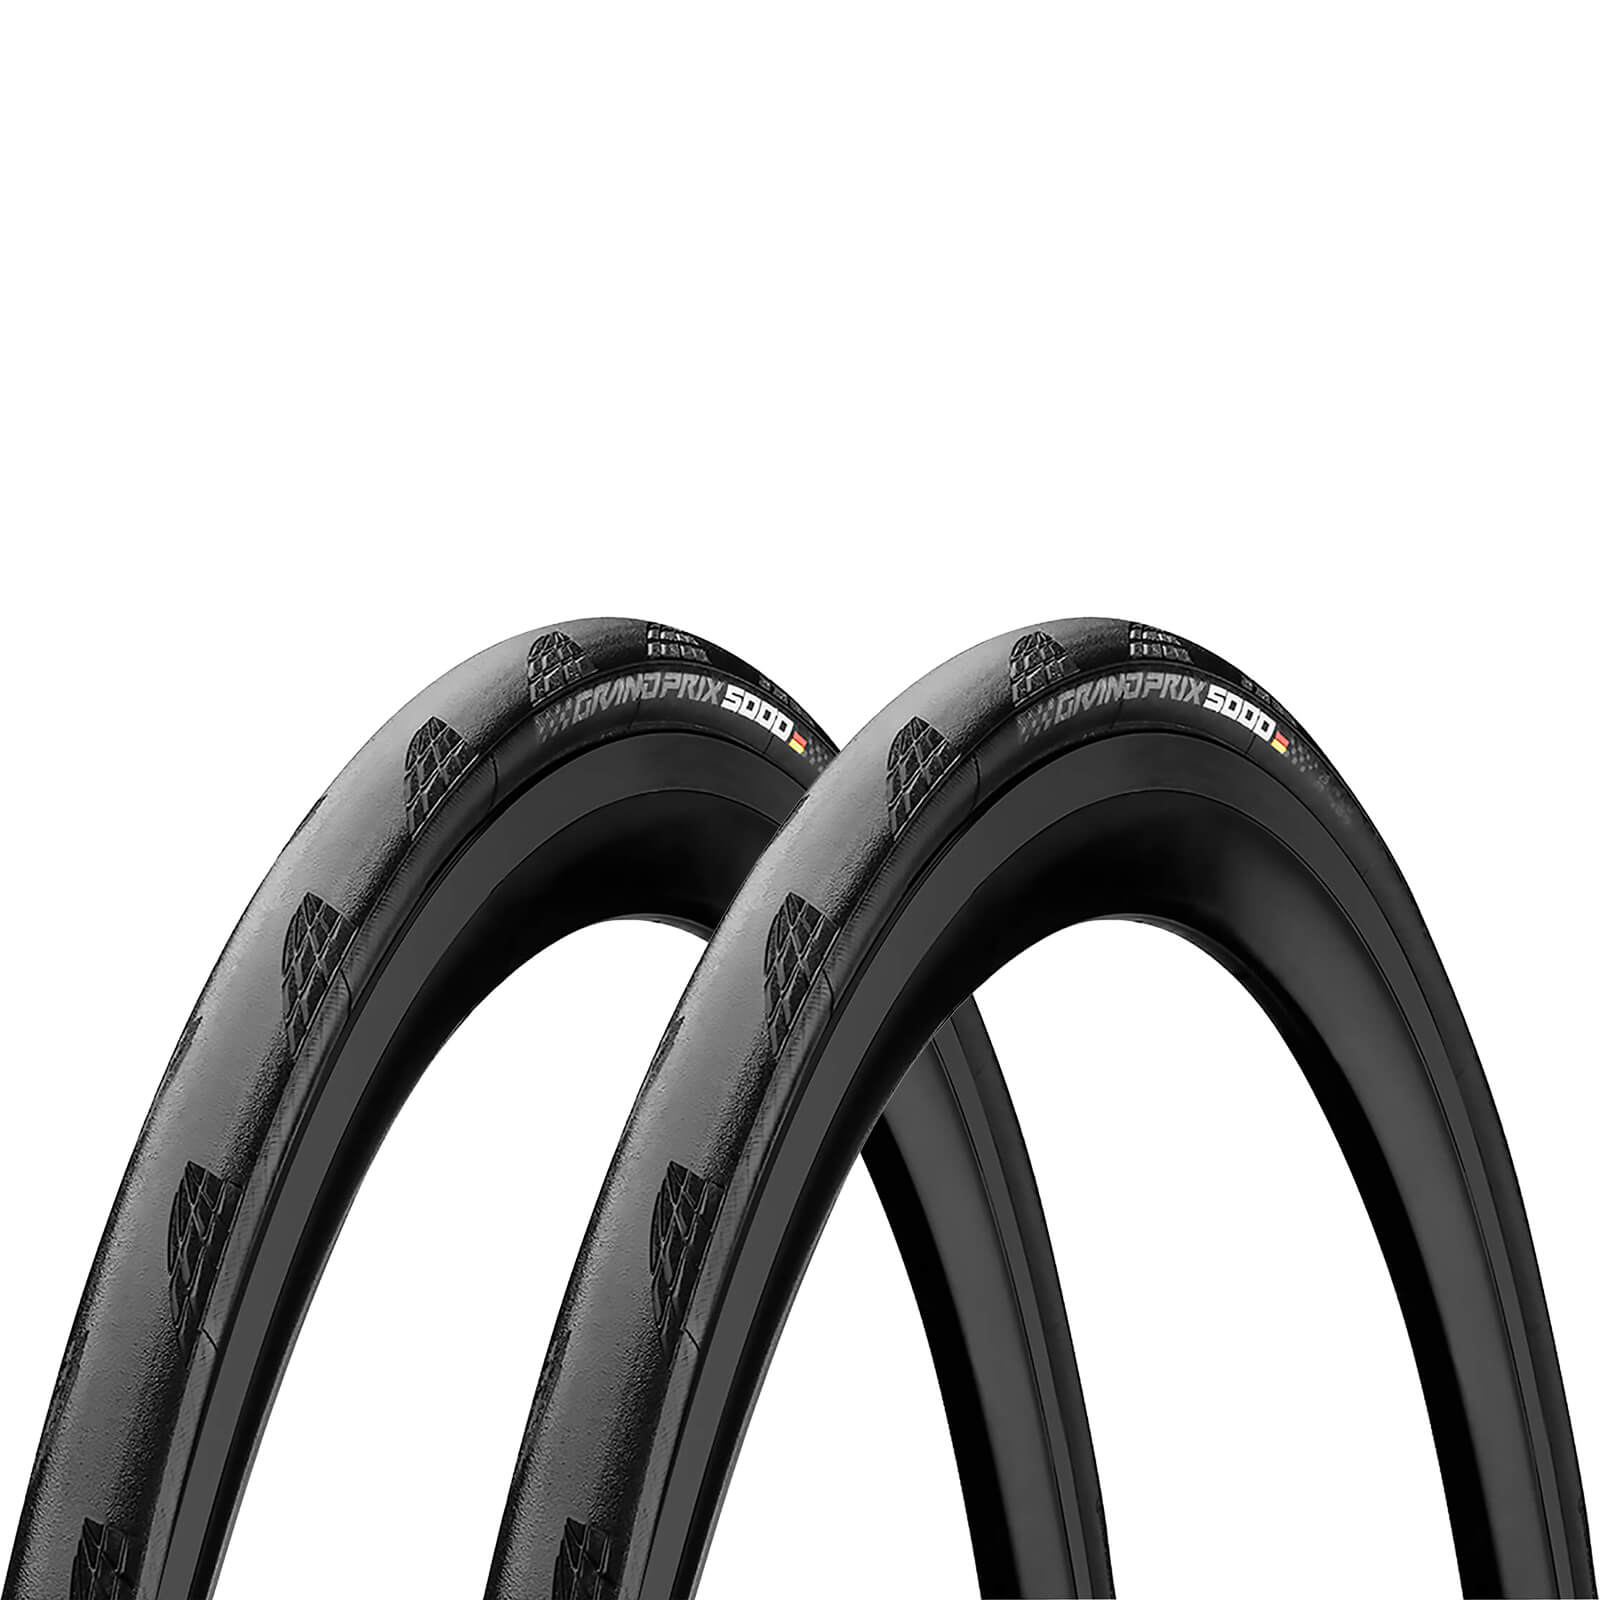 Image of Continental Grand Prix 5000 Clincher Road Tyre Twin Pack - Black - 700c x 23mm